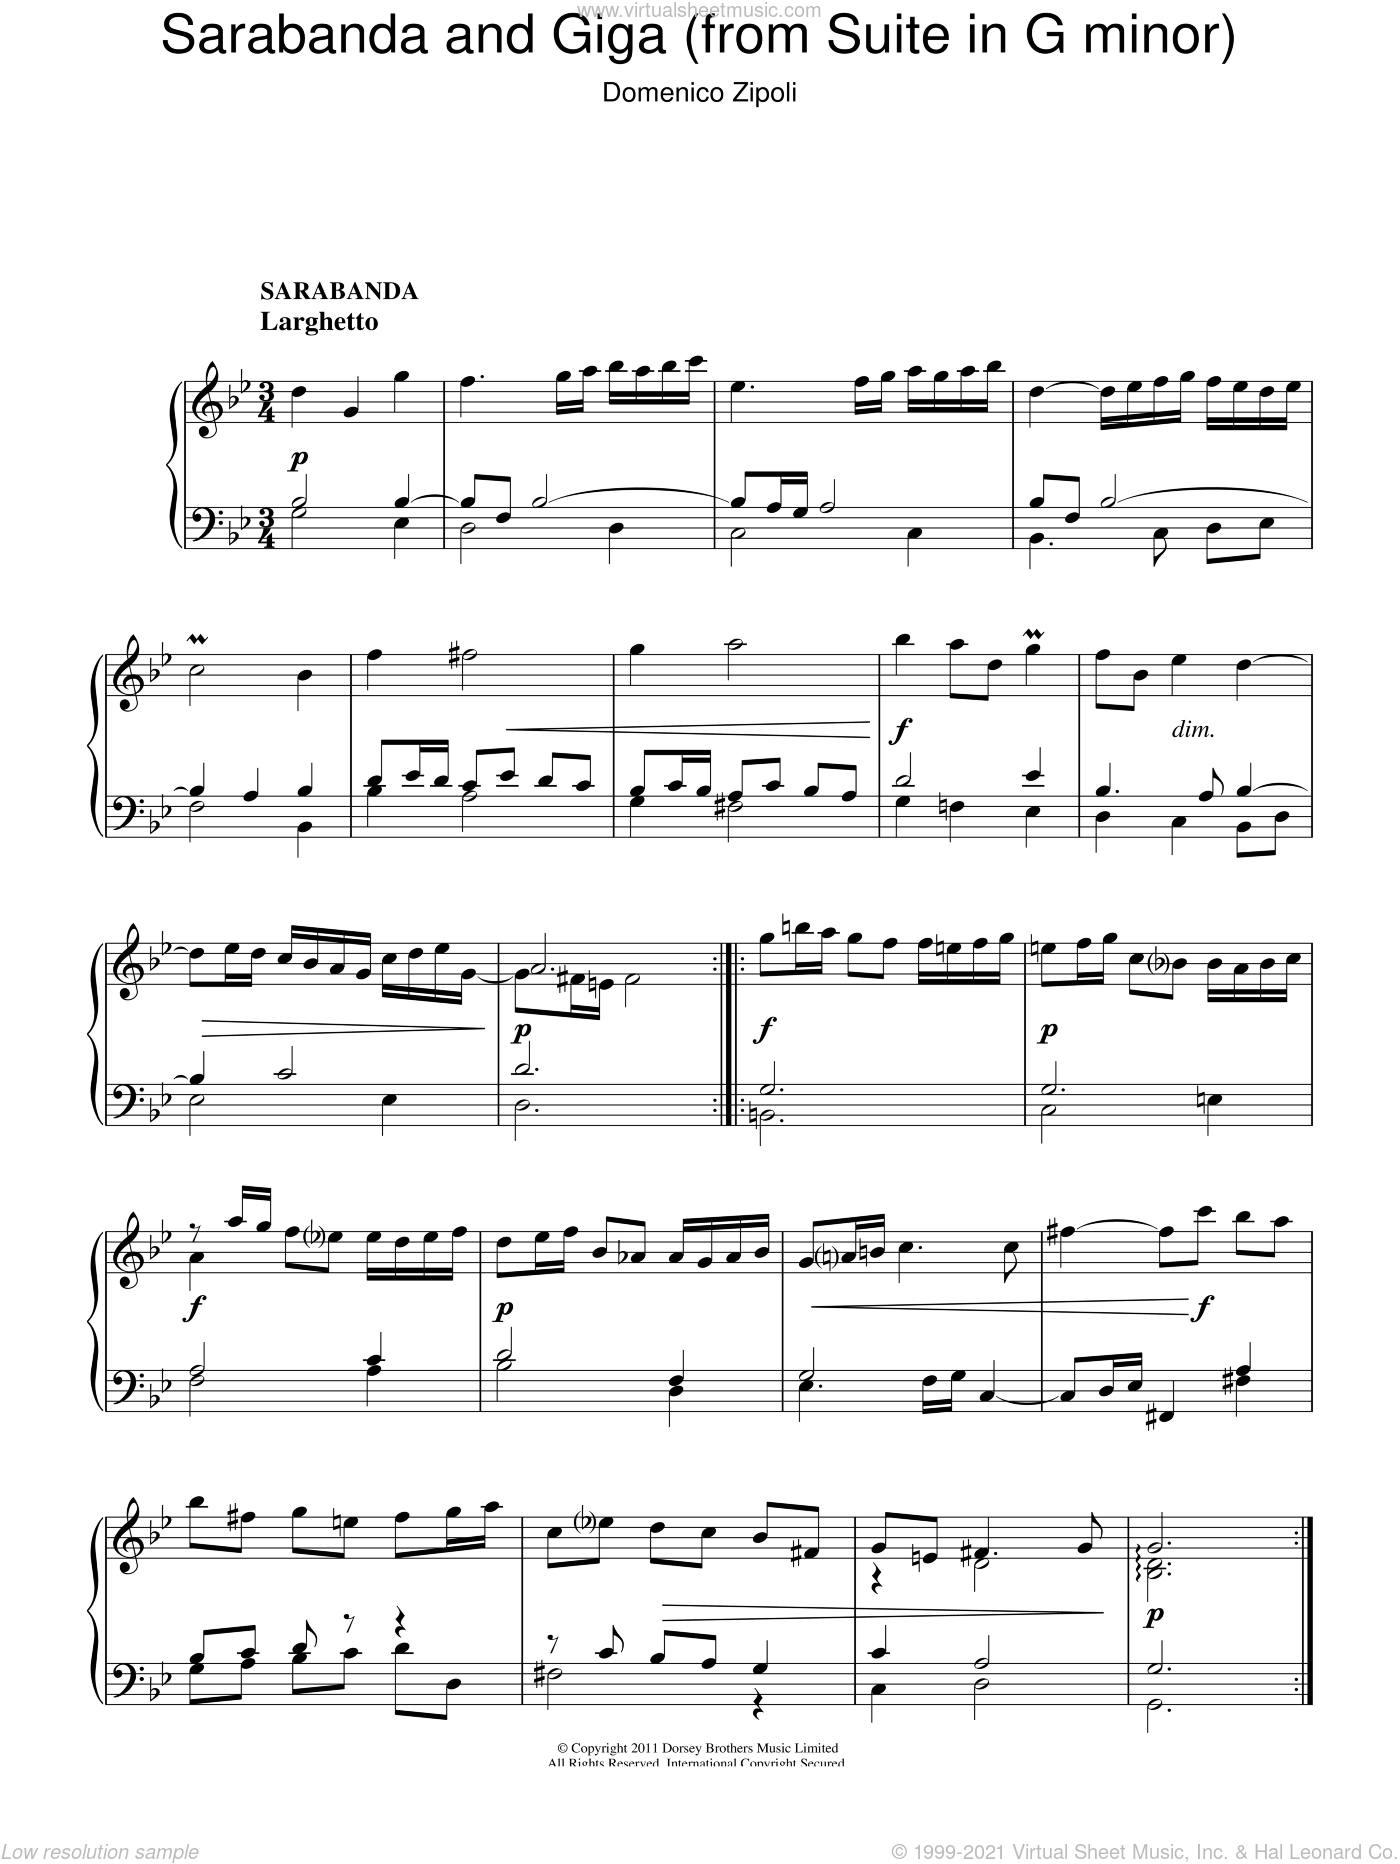 Sarabanda And Giga (from The Suite In G Minor) sheet music for piano solo by Domenico Zipoli